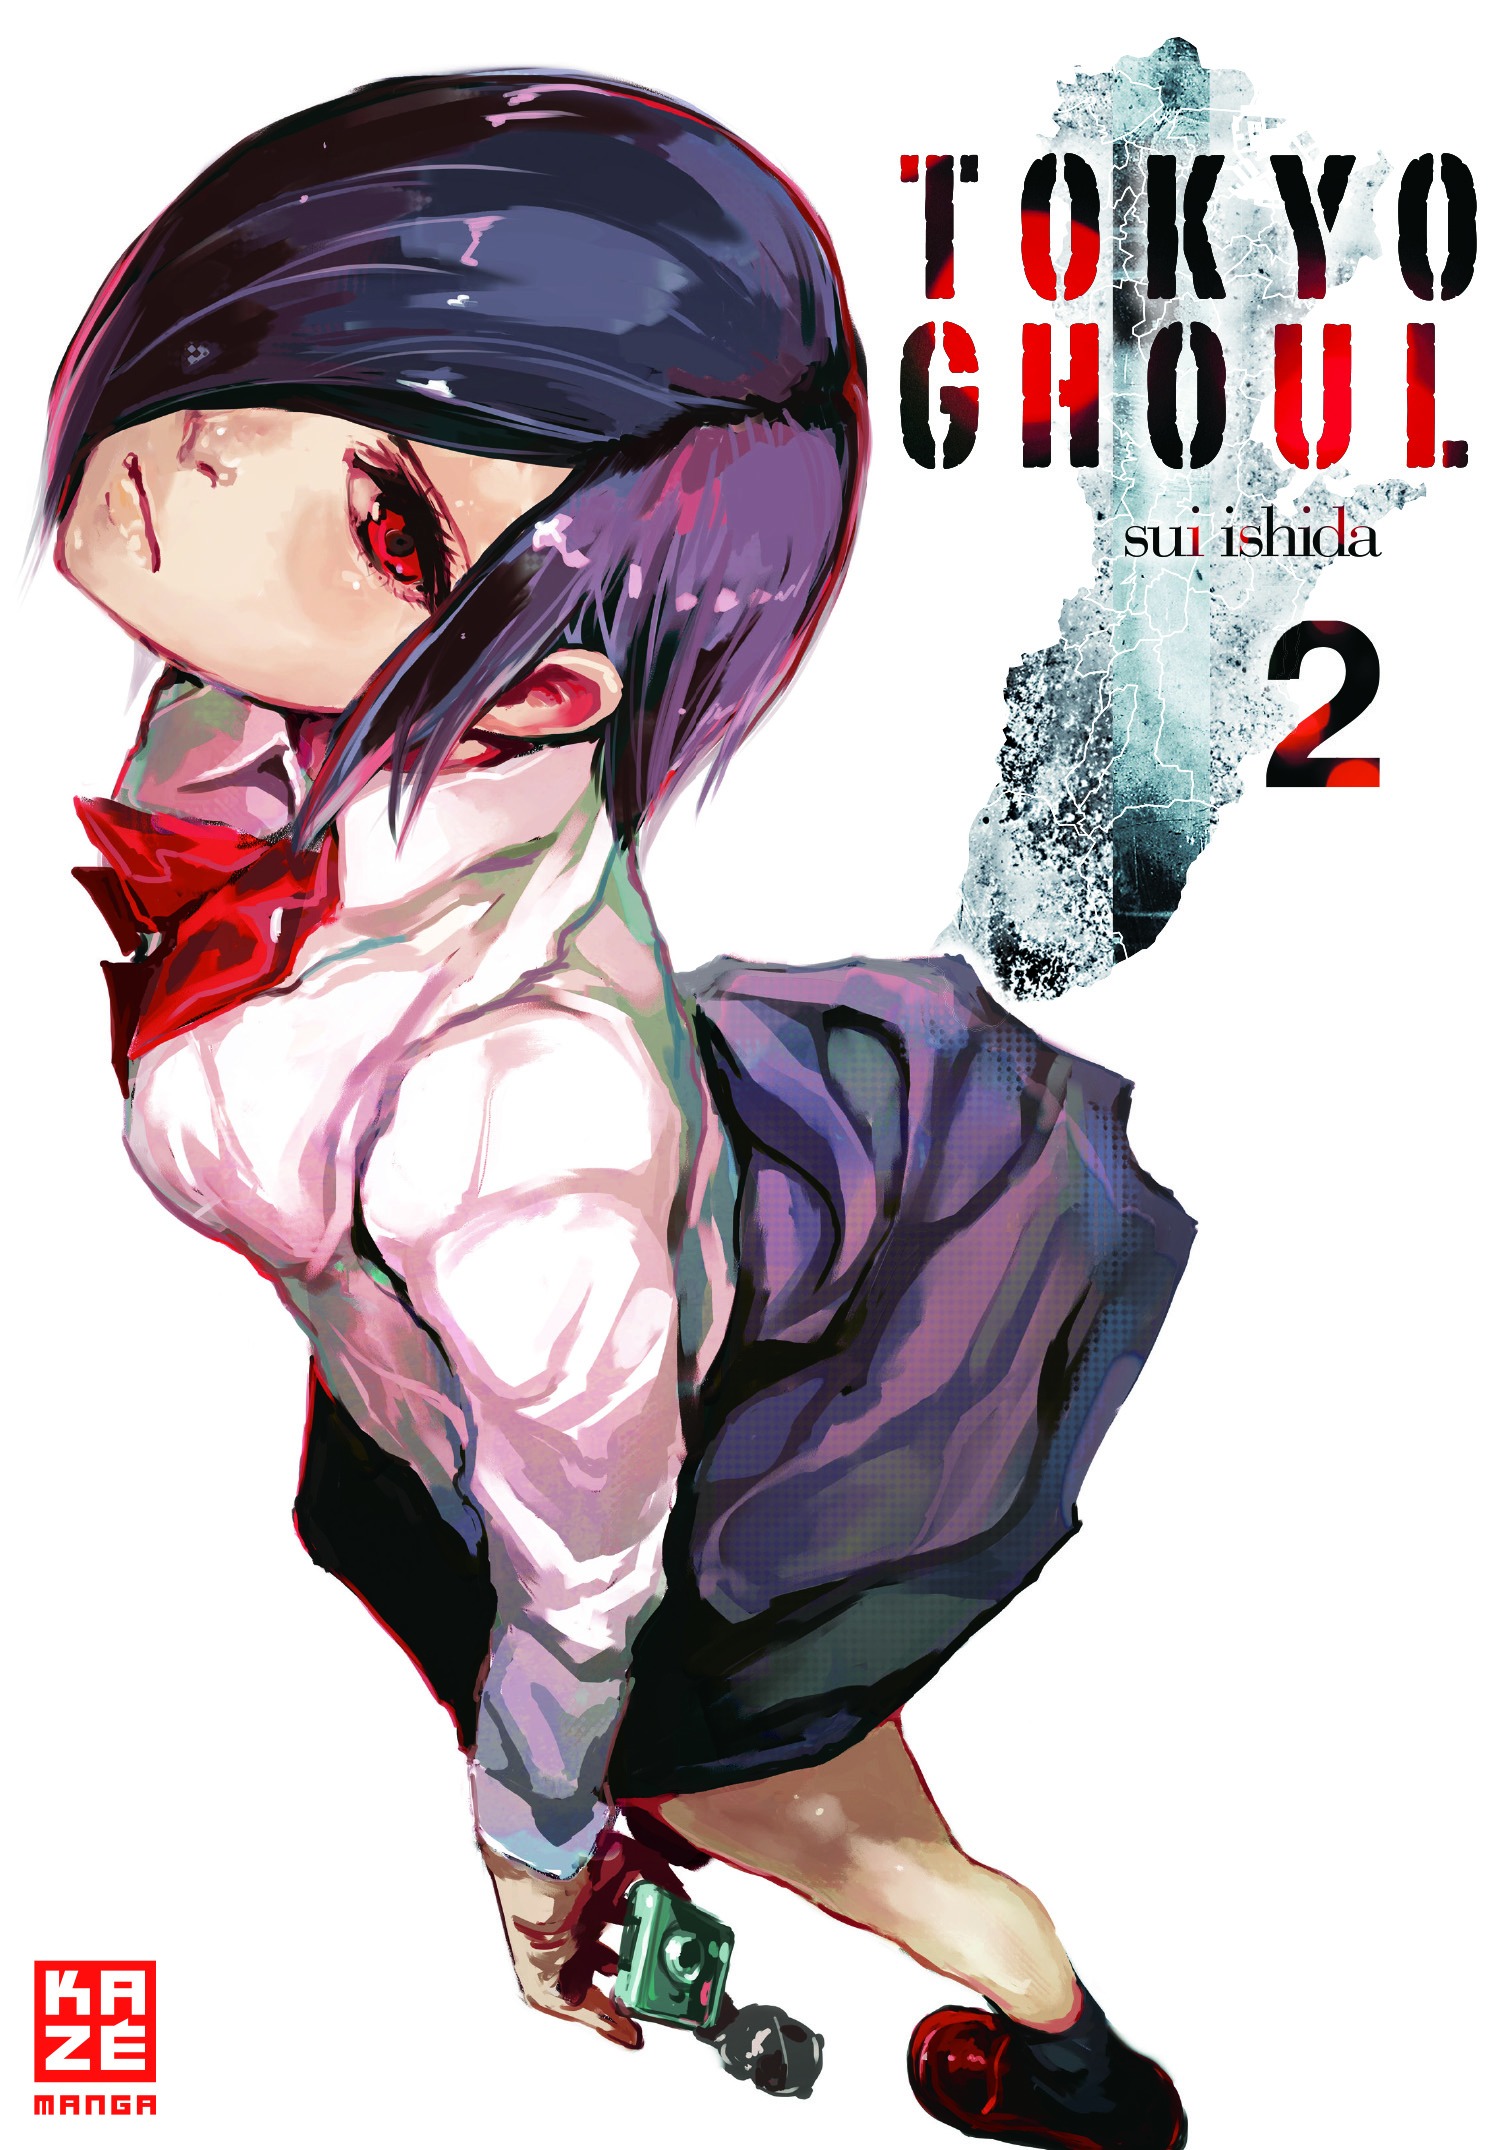 Tokyo Ghoul Band 2 Cover